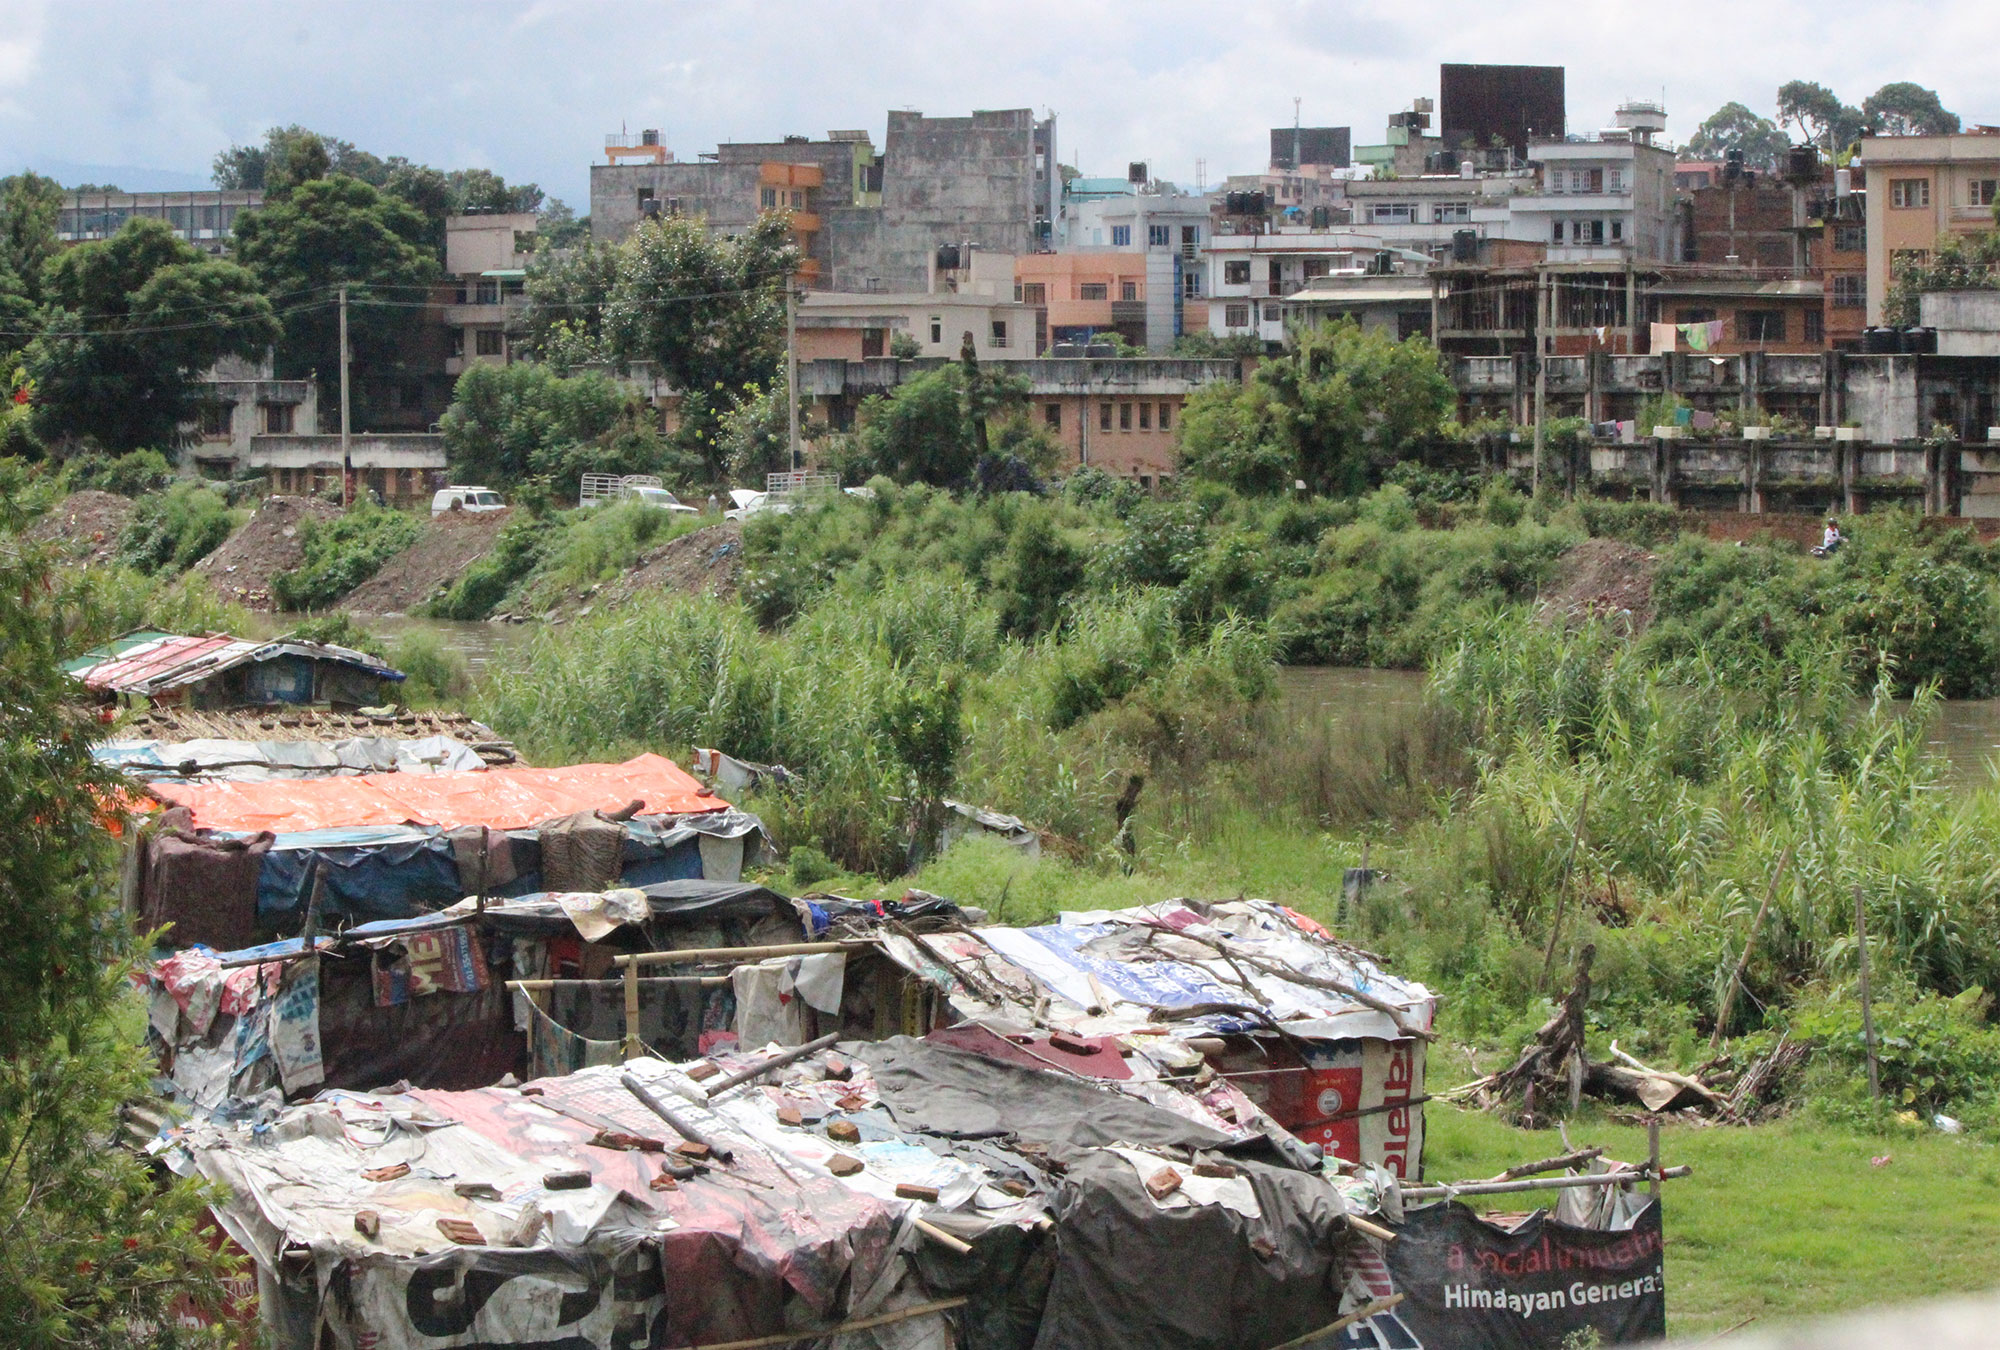 Houses made from tarps and wooden poles on the outskirts of a city